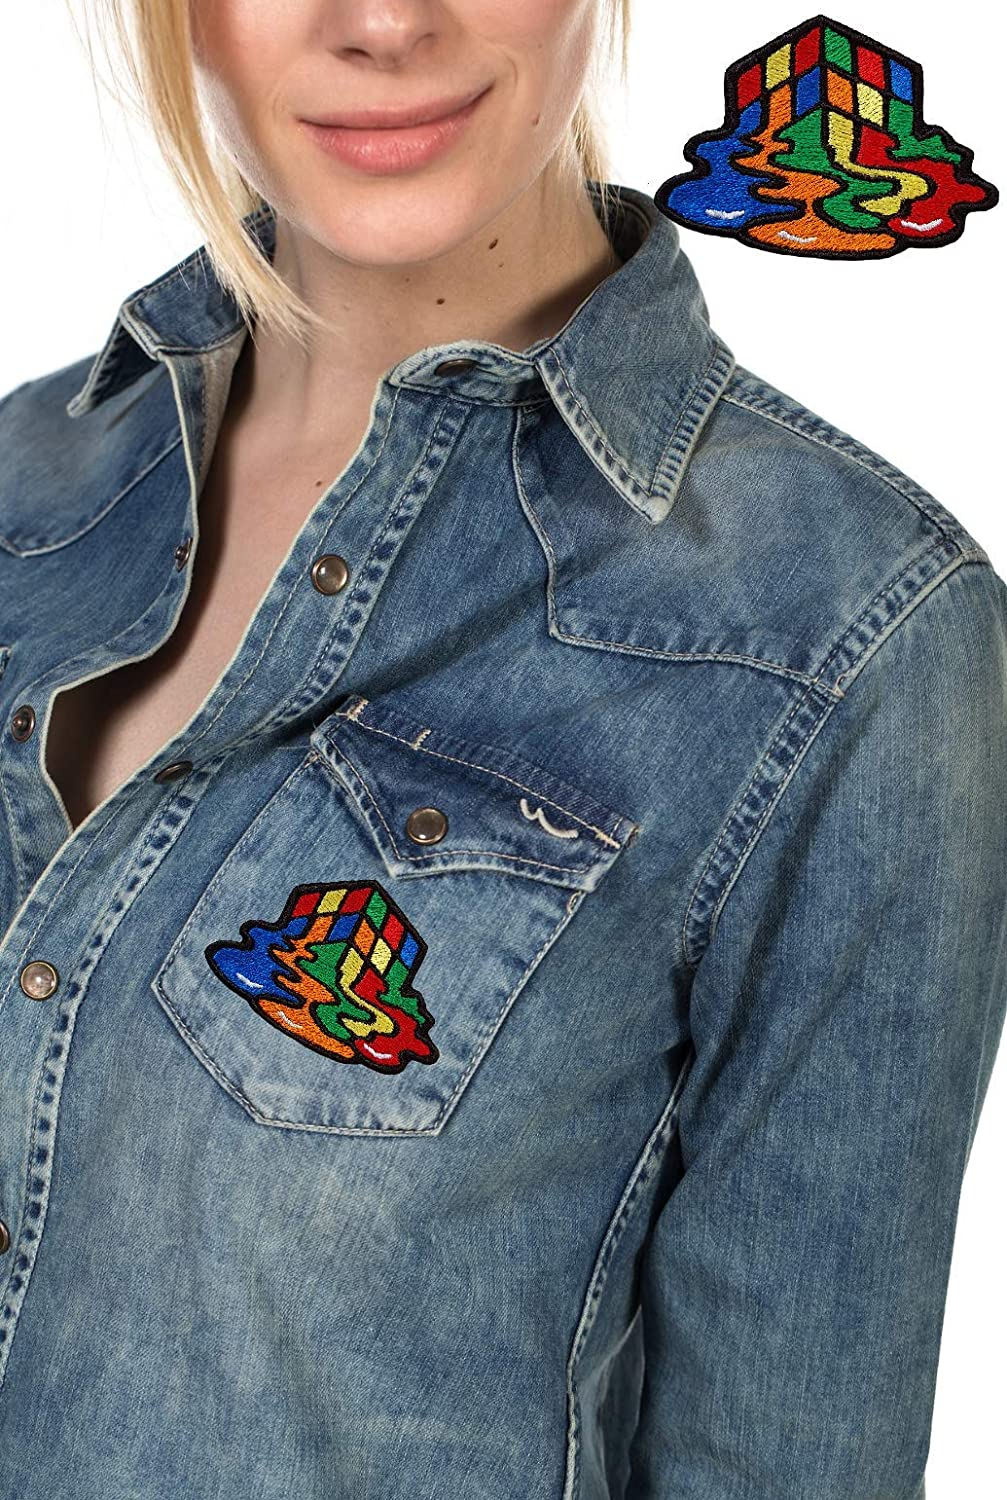 Melting Cube Patch Embroidered Iron On Patches Jacket Badge Jeans Applique Small